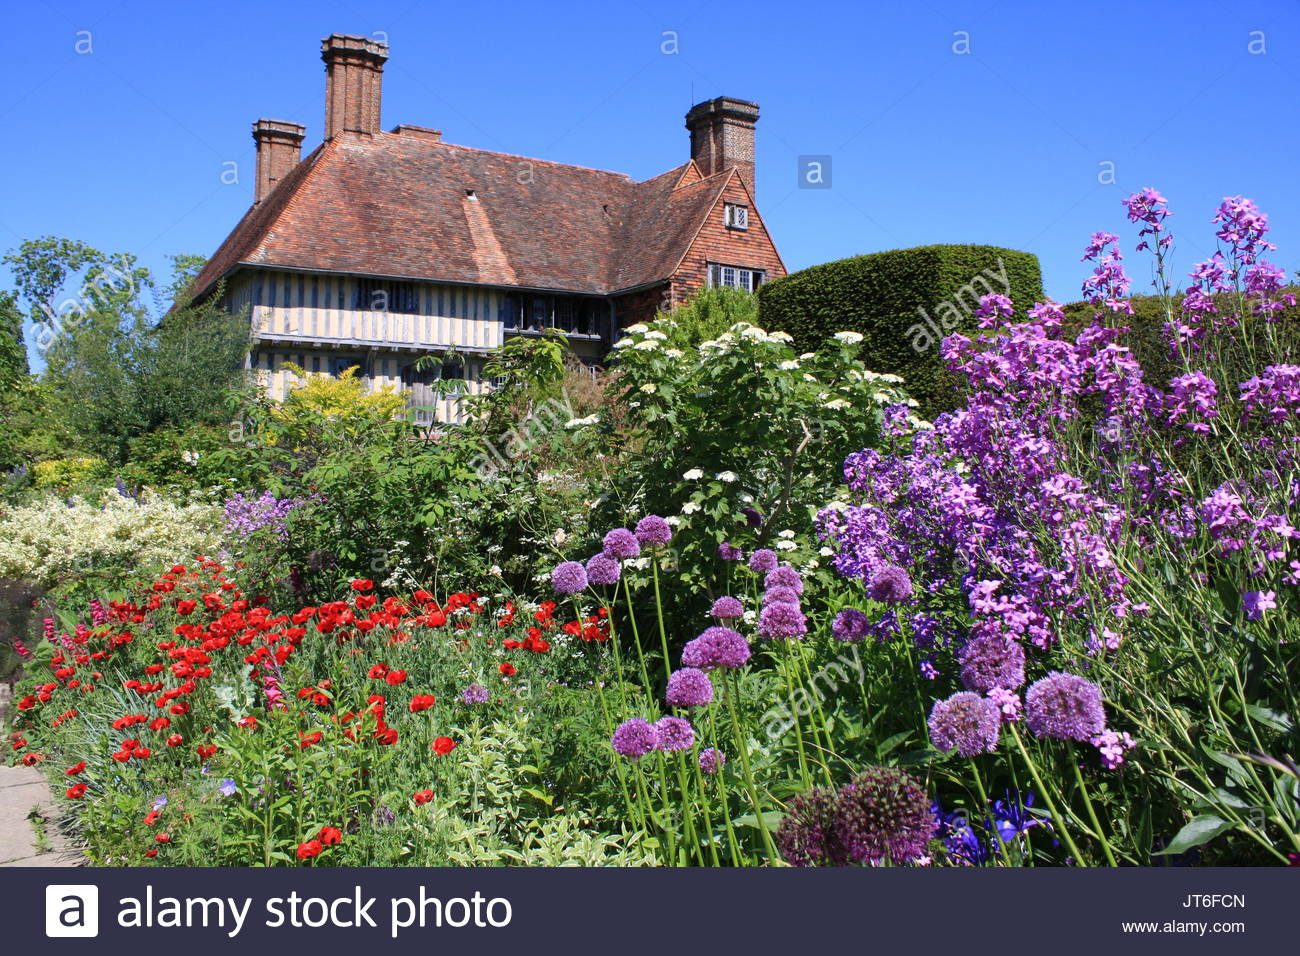 Great Dixter House and Gardens The Southeast, Fergus Garrett Stock Photos & Fergus Garrett Stock Images - Alamy